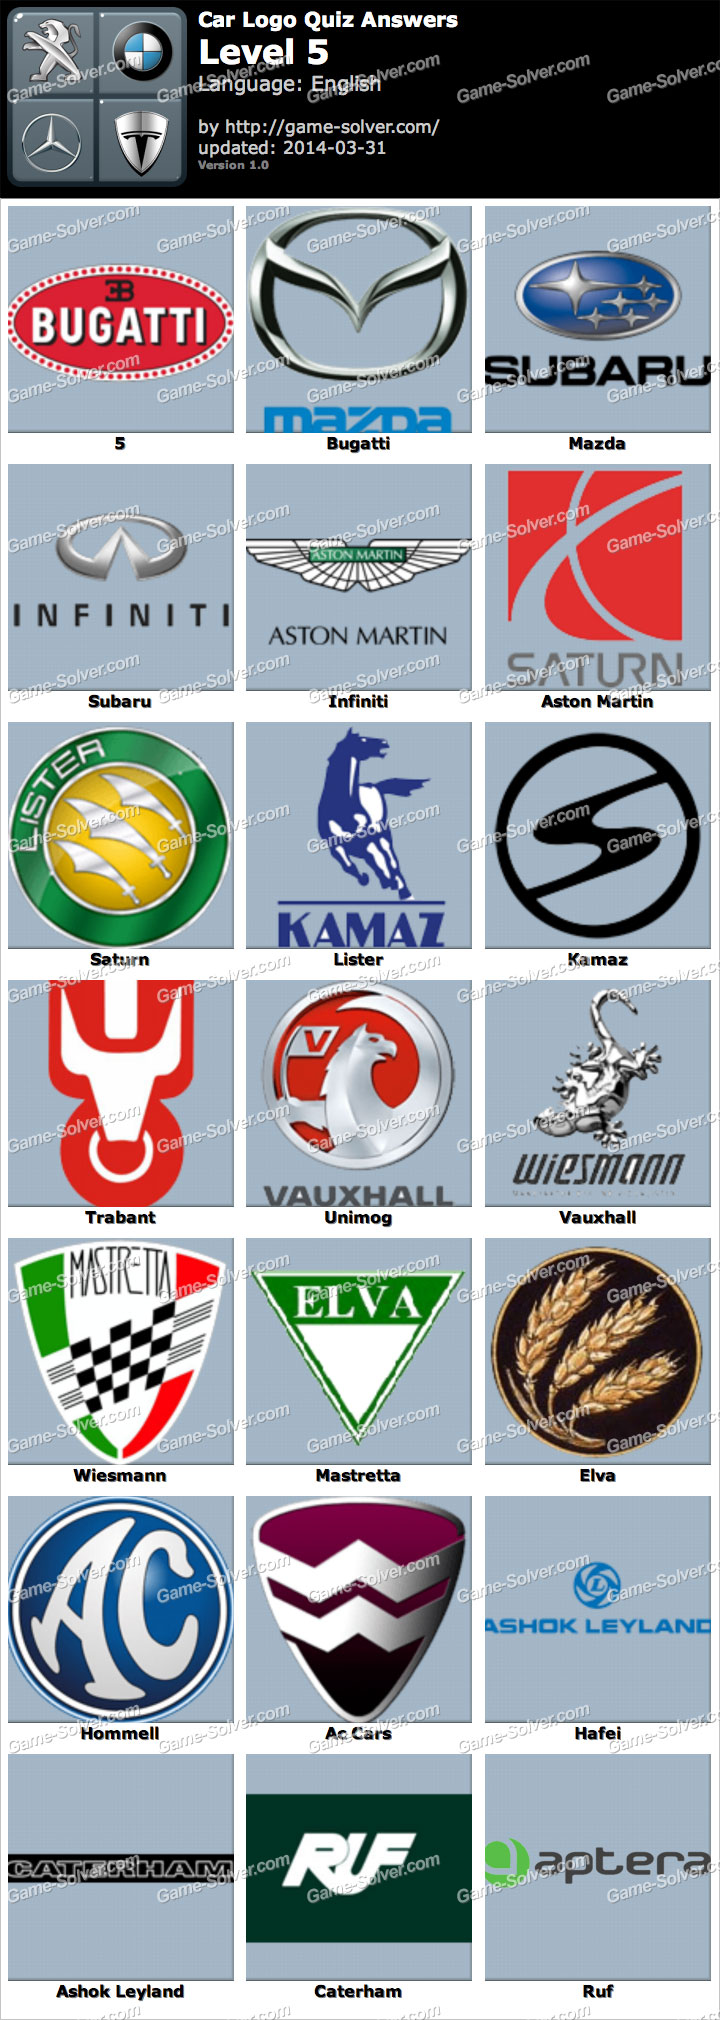 car logo quiz level 5 game solver